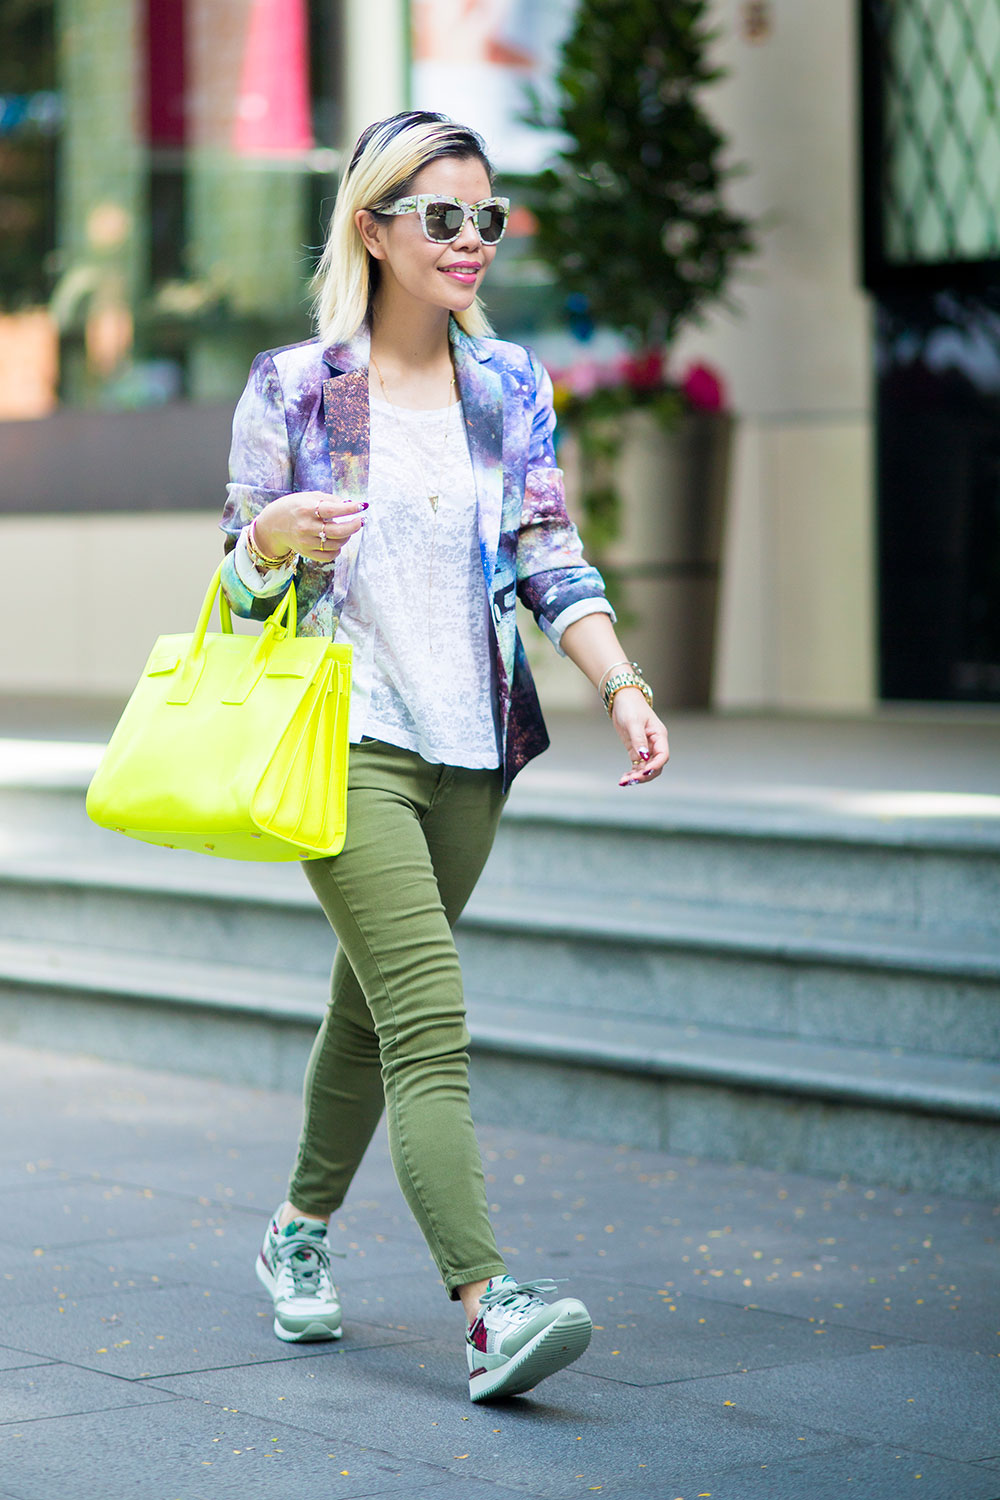 Crystal Phuong- Going green with printed blazer, neon Sac de jour bag, and Dolce Gabbana sneakers